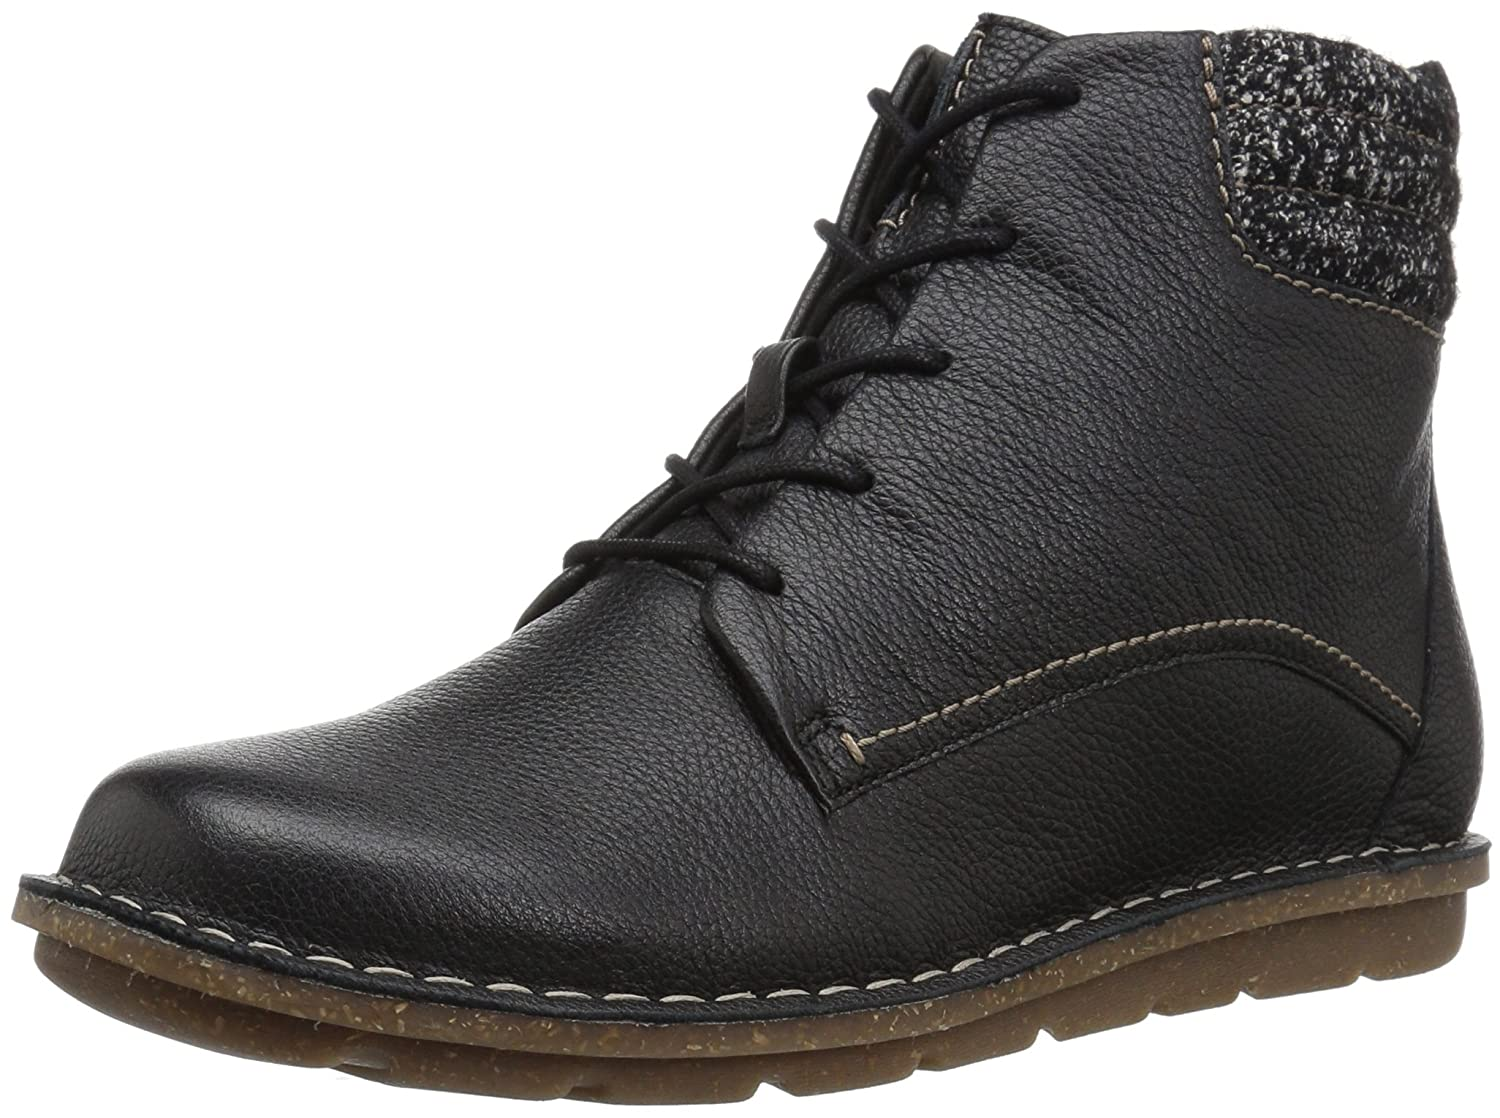 CLARKS Women's Tamitha Rose Boot B01N2TLHRW 8 W US|Black Leather